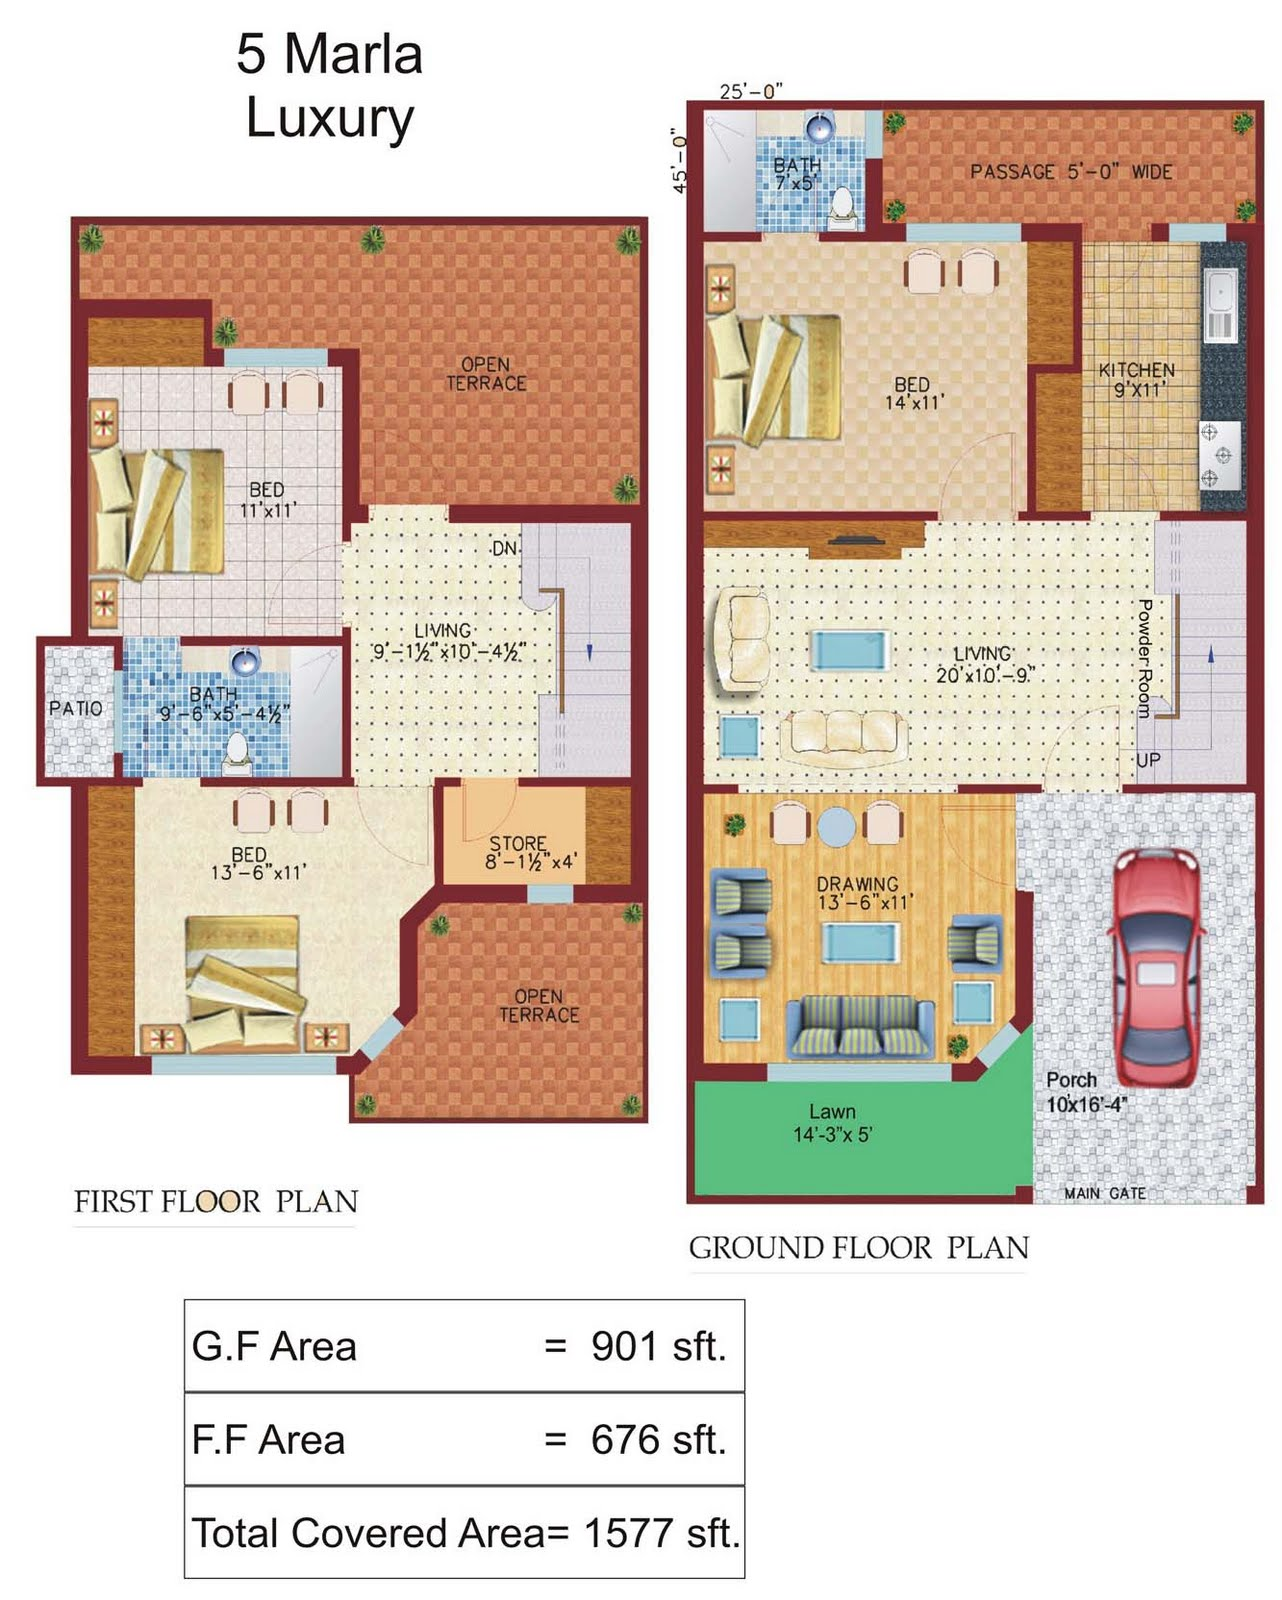 5 marla house plans civil engineers pk Construction cost of 5 marla house